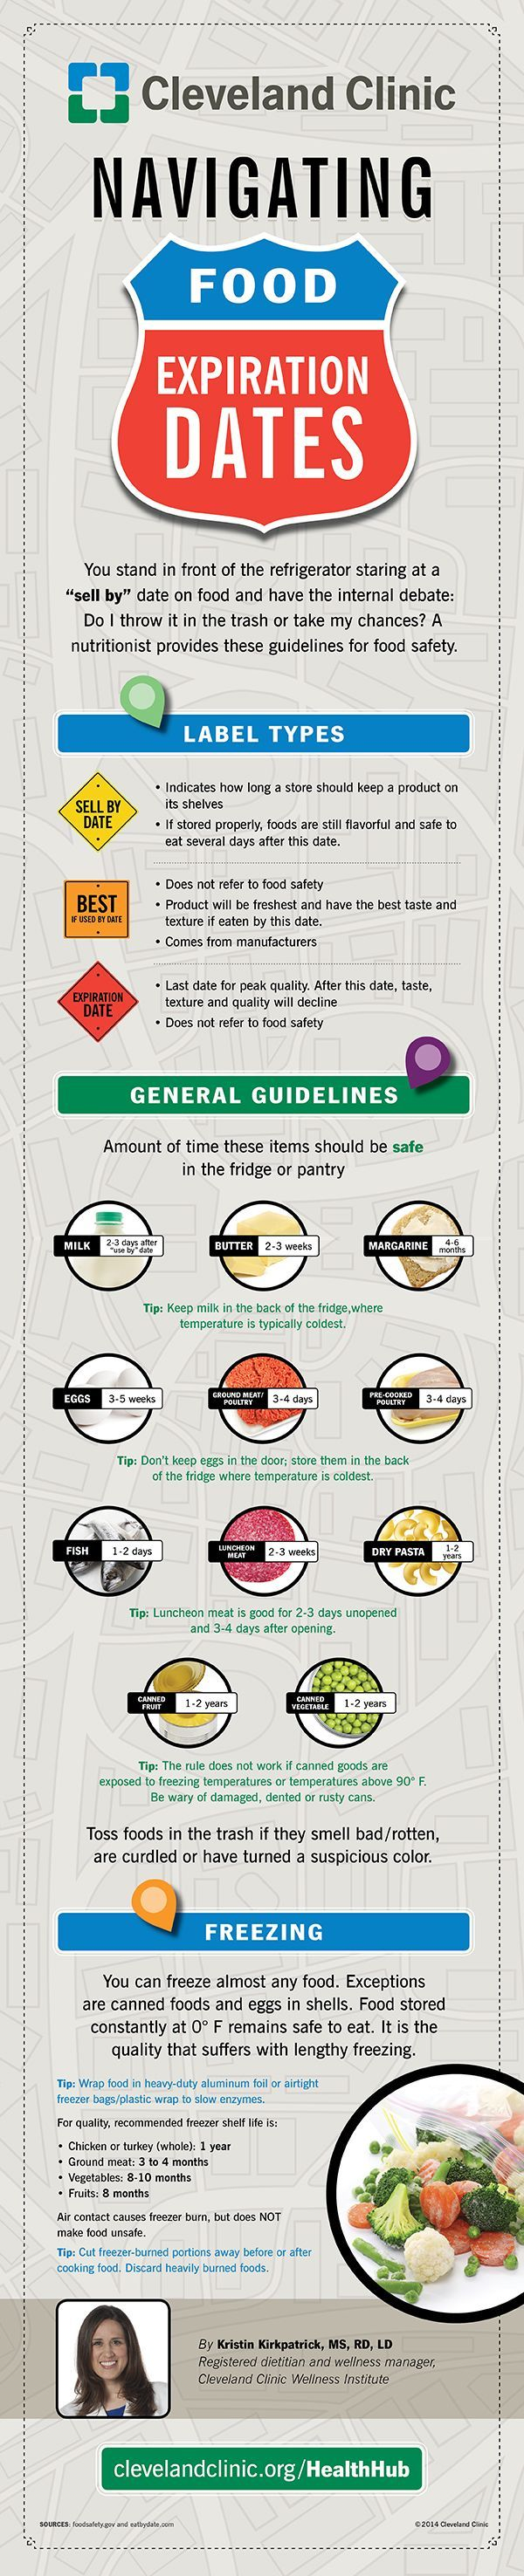 Workbooks kitchen safety worksheets : 39 best Food & Kitchen Safety images on Pinterest | Cleanses ...